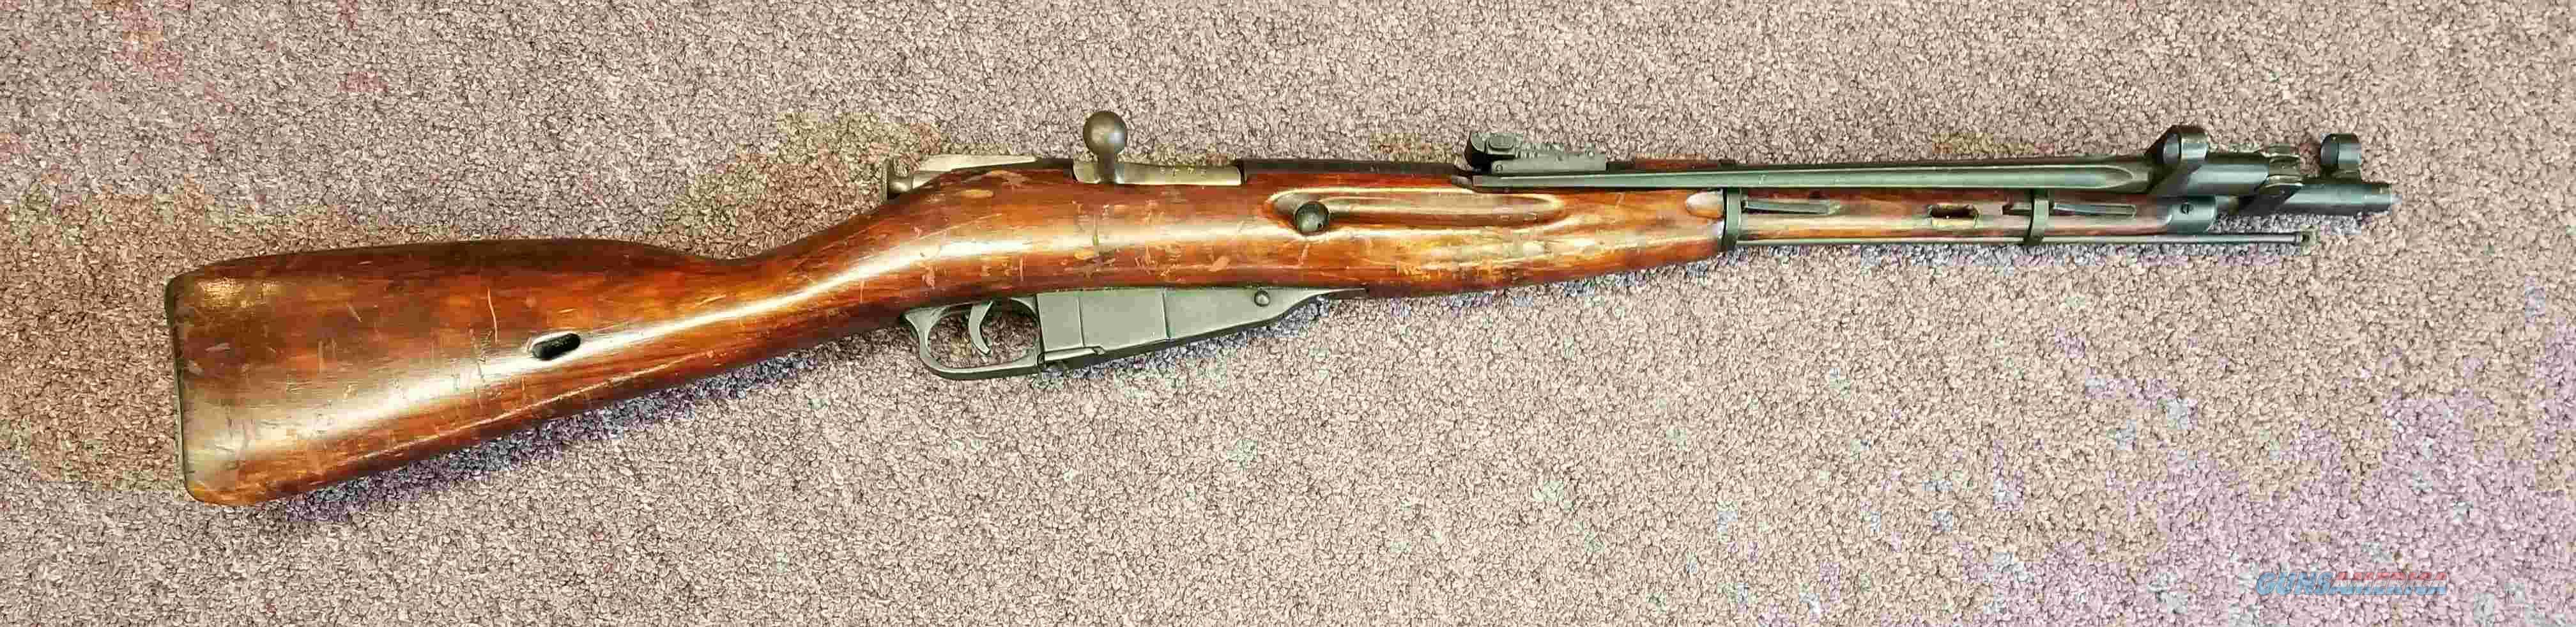 Russian M44 - Mosin - 7.62X54R - Free Shipping  Guns > Rifles > Military Misc. Rifles Non-US > Other